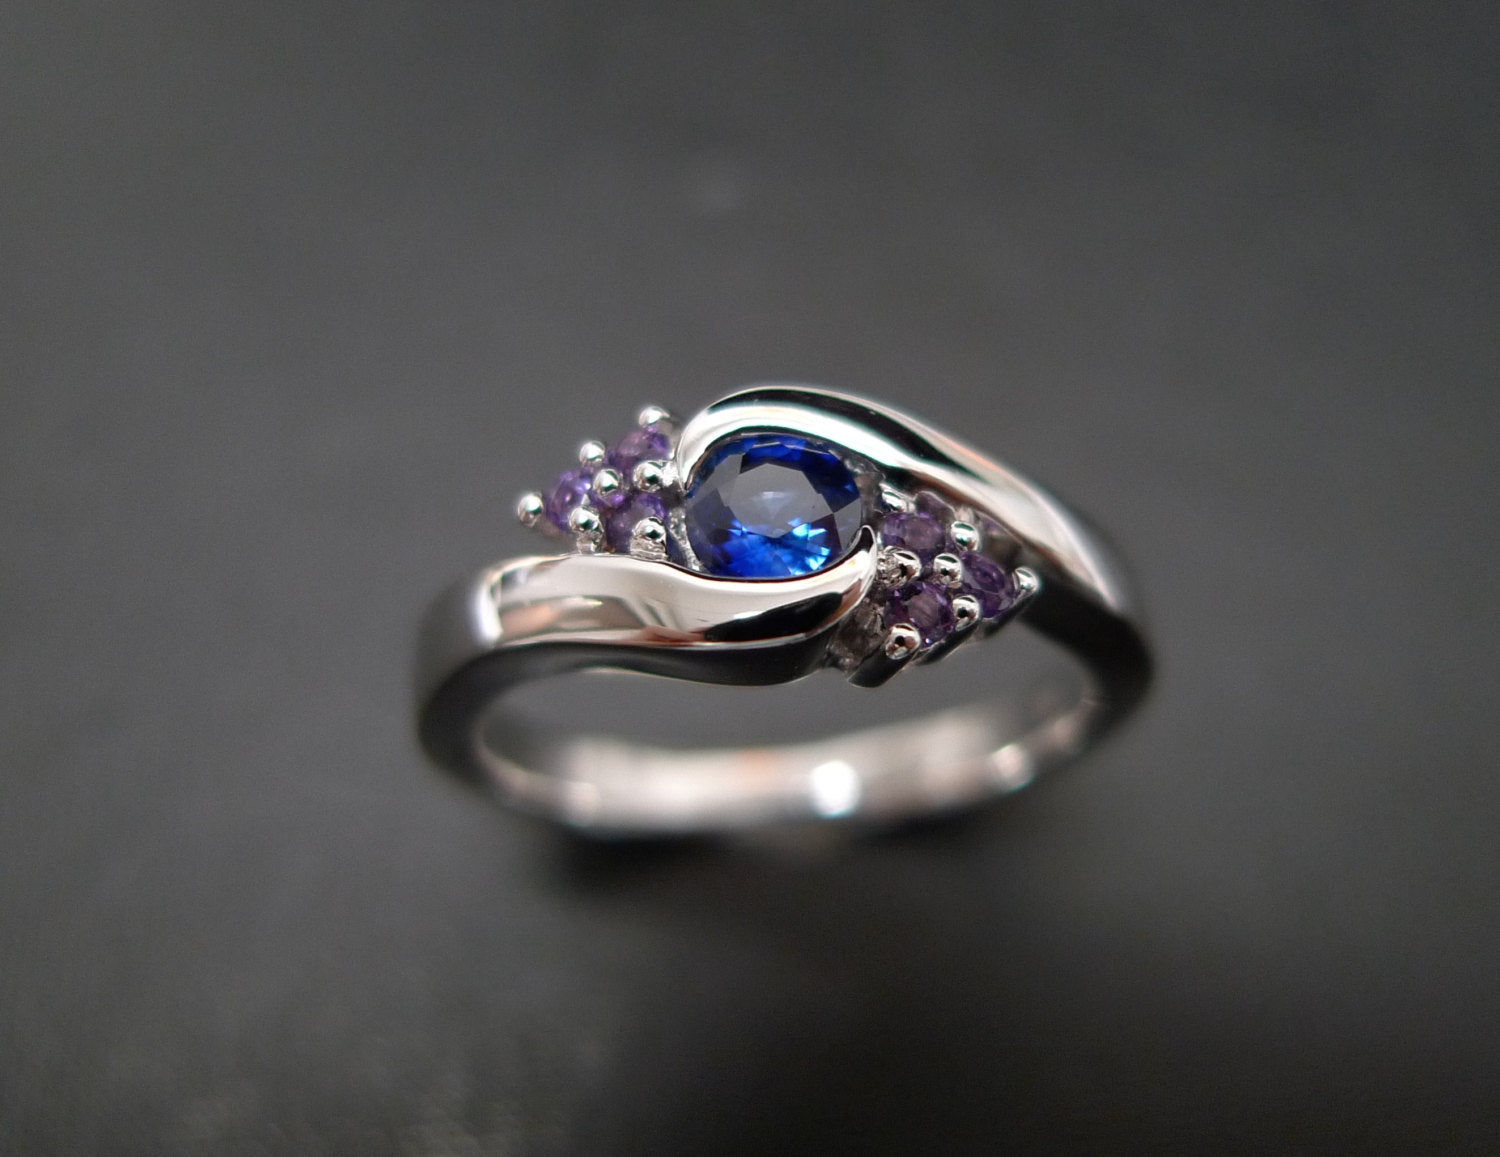 Blue Sapphire and Amethyst Twist Ring in 18K White Gold - HN JEWELRY